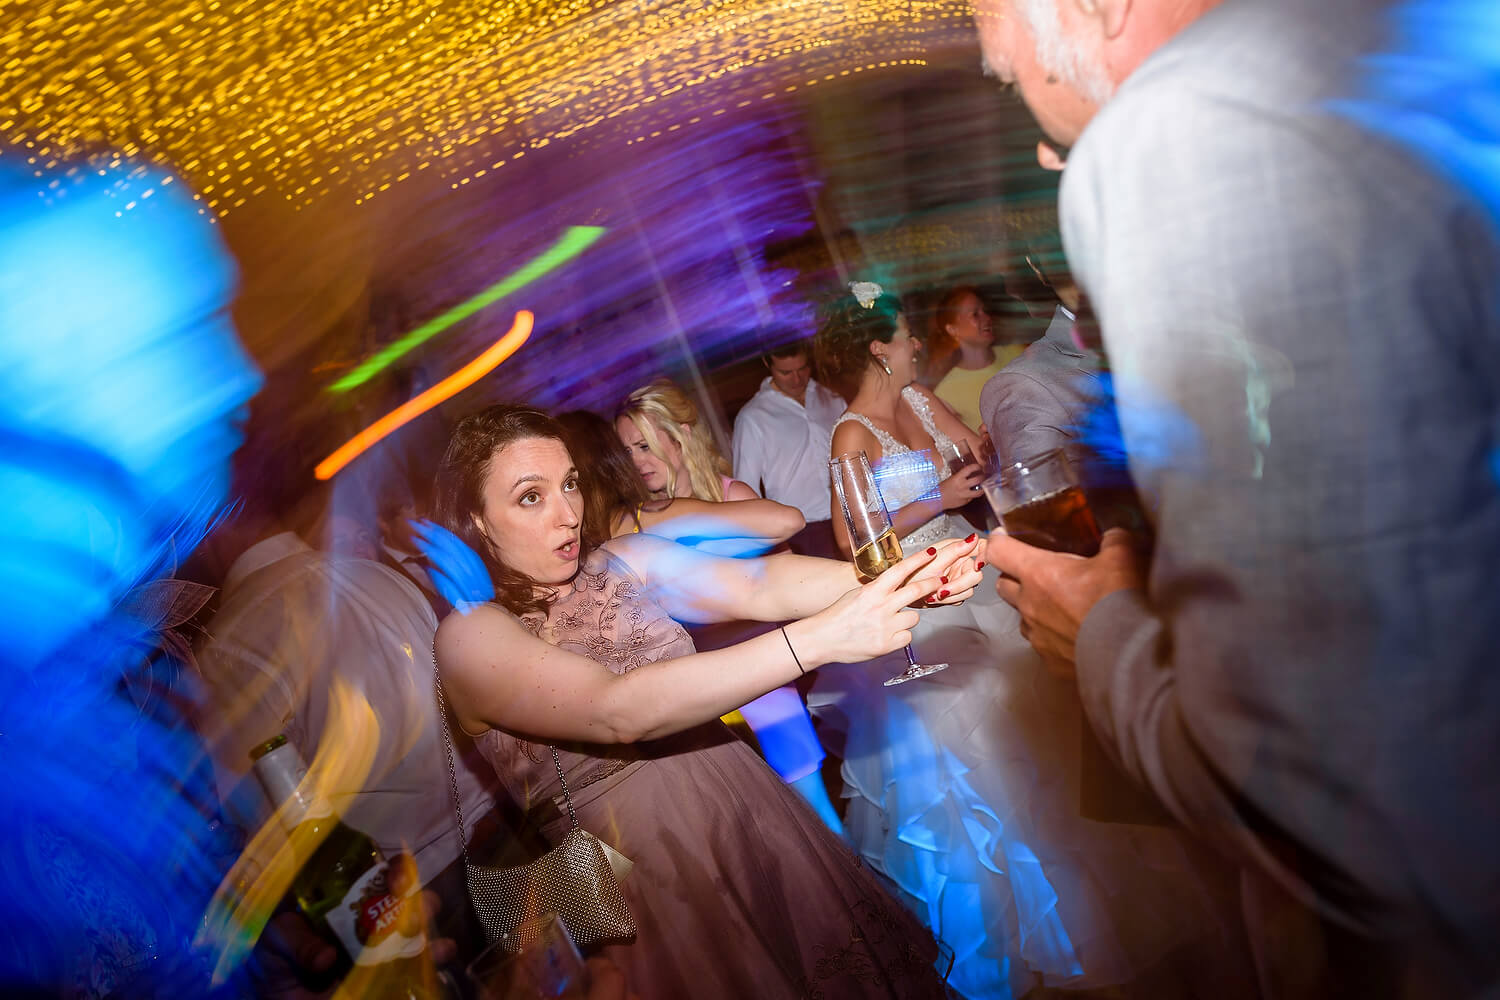 lulworth dancefloor at wedding